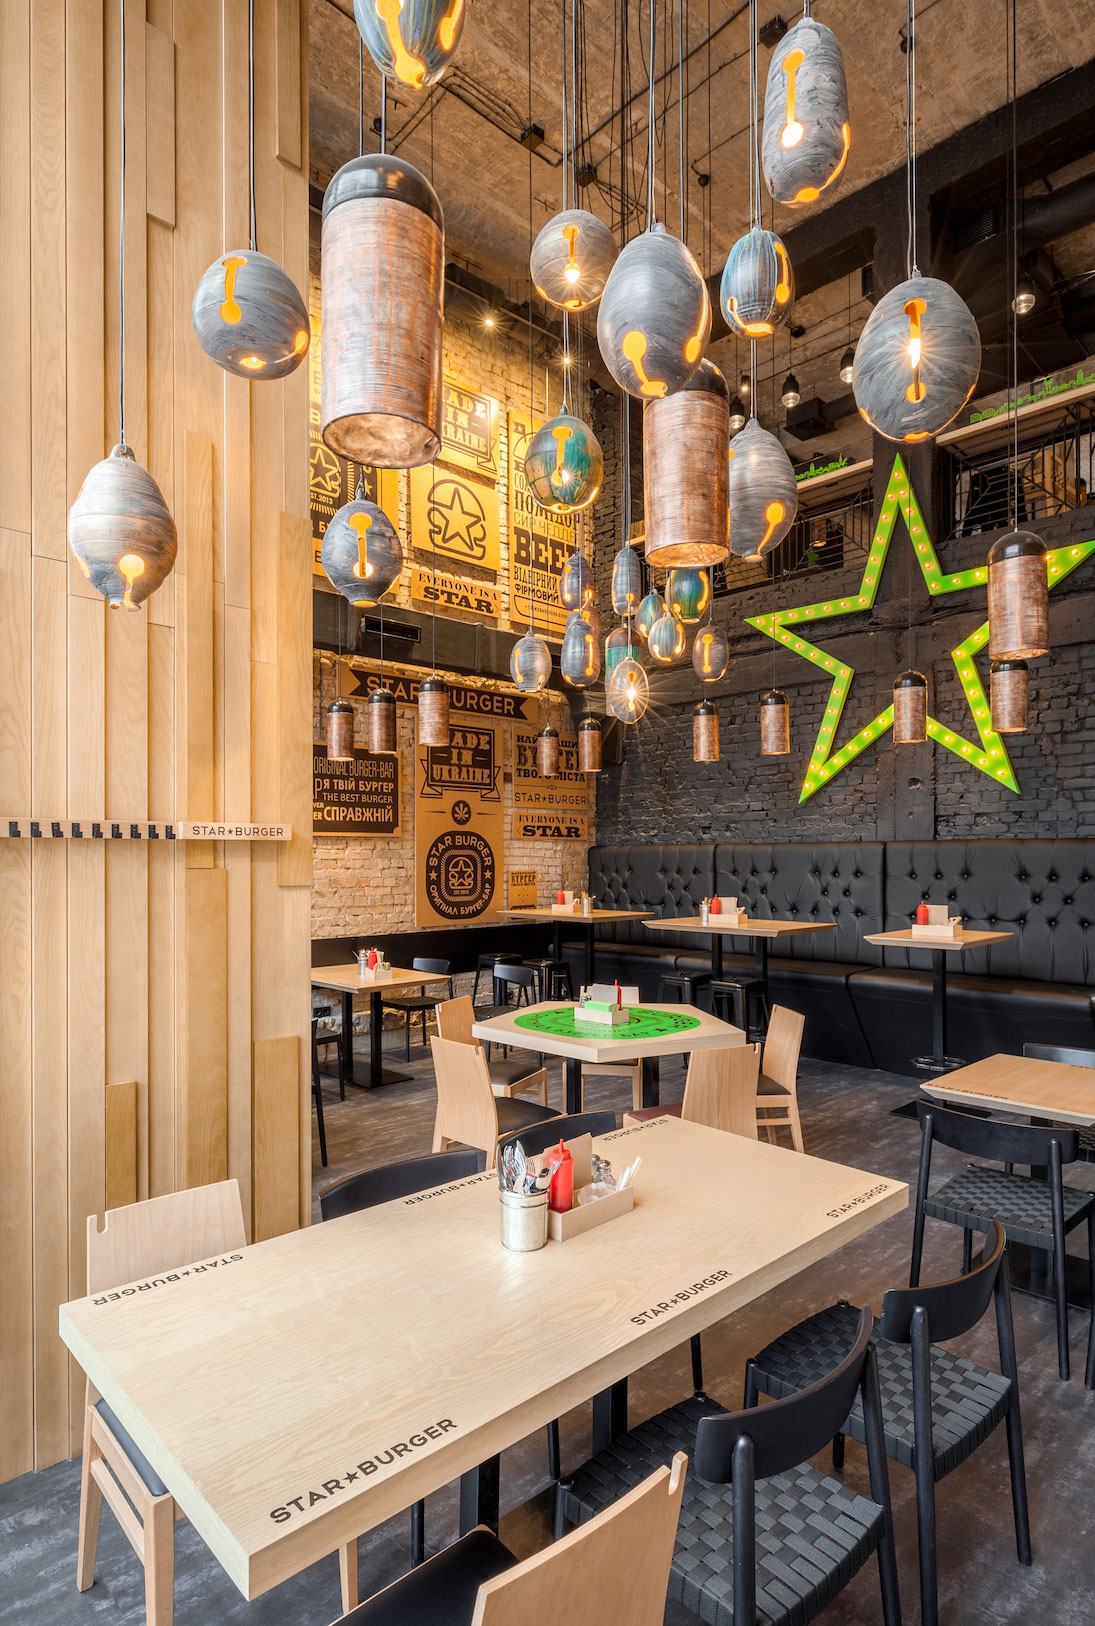 Star Burger An Industrial Restaurant Design  Adorable Home